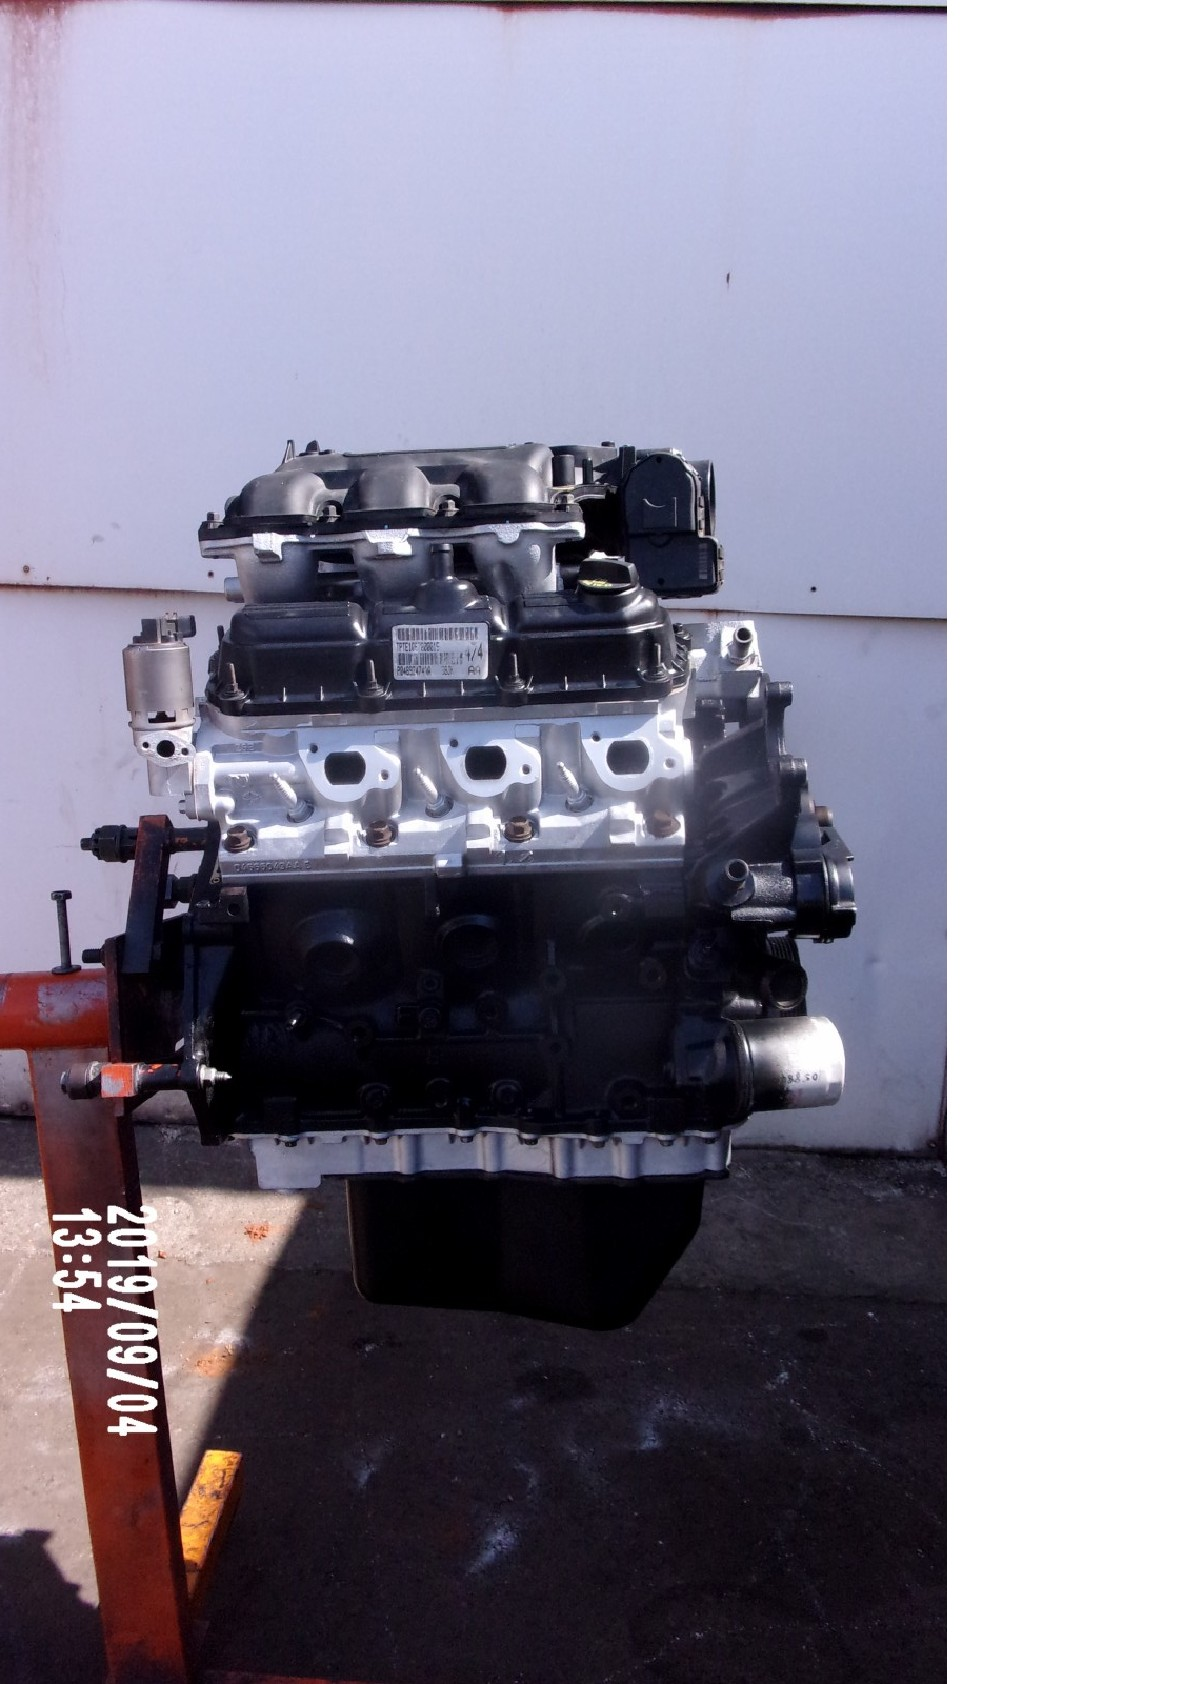 Jeep Wrangler 3.8 v6 petrol engine